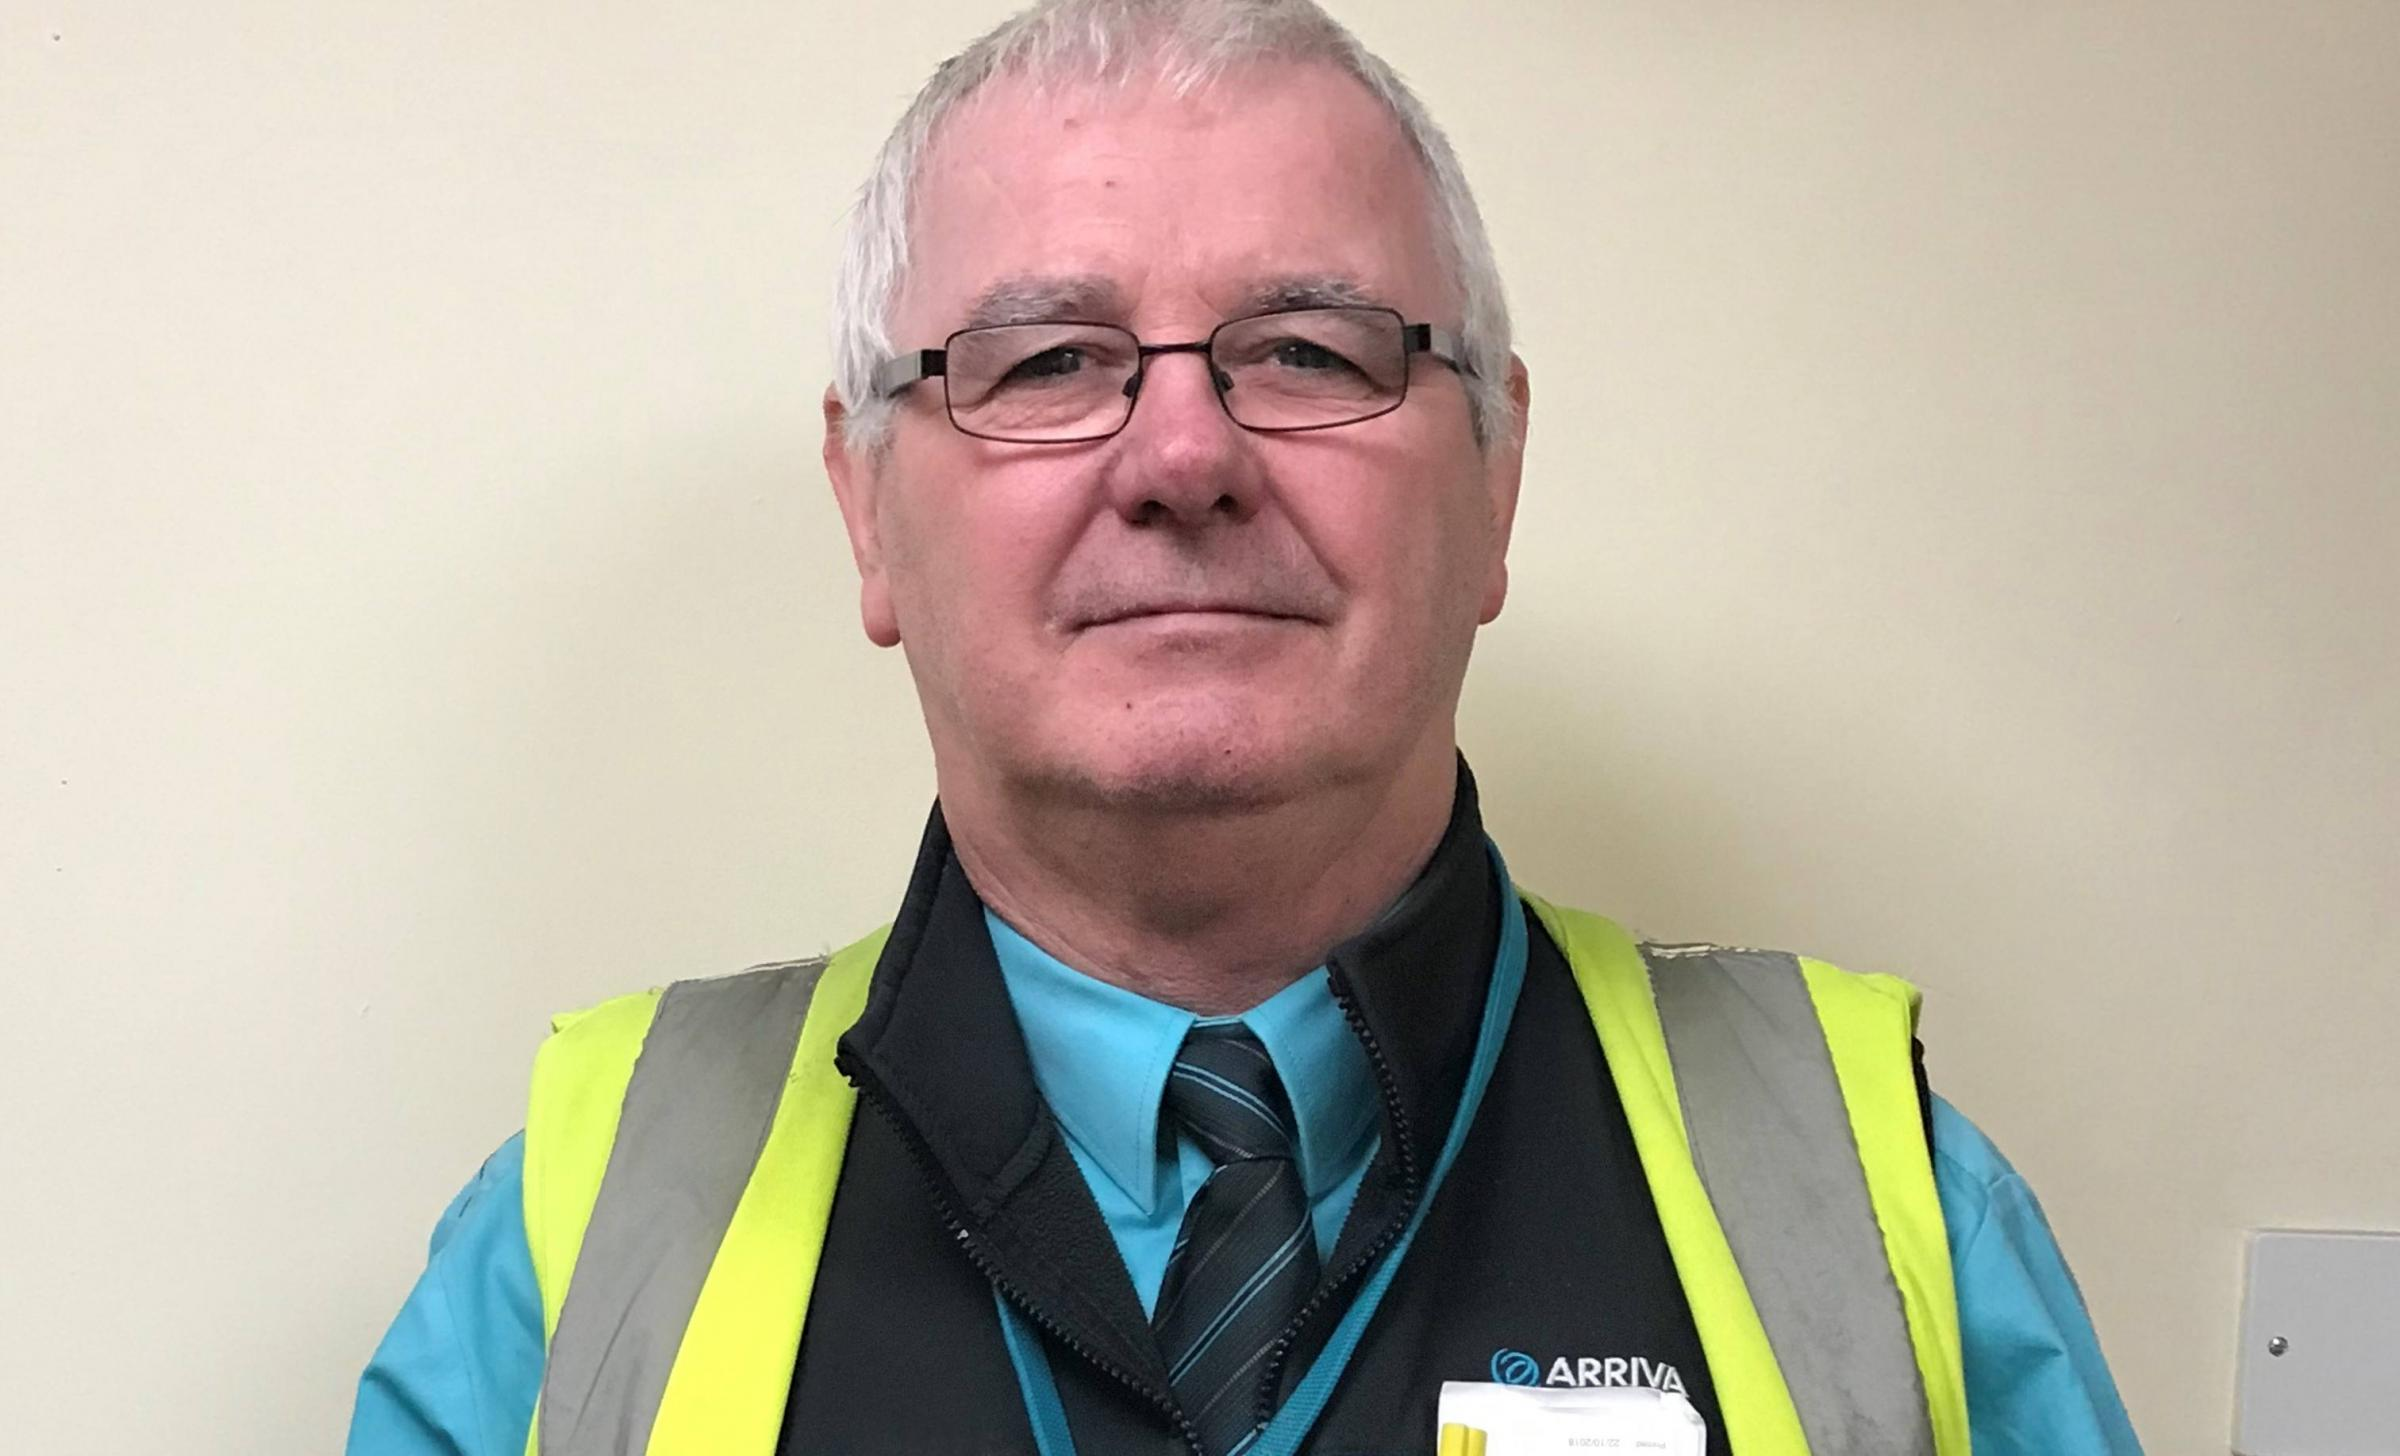 Bus driver from Mold is on route to win national award